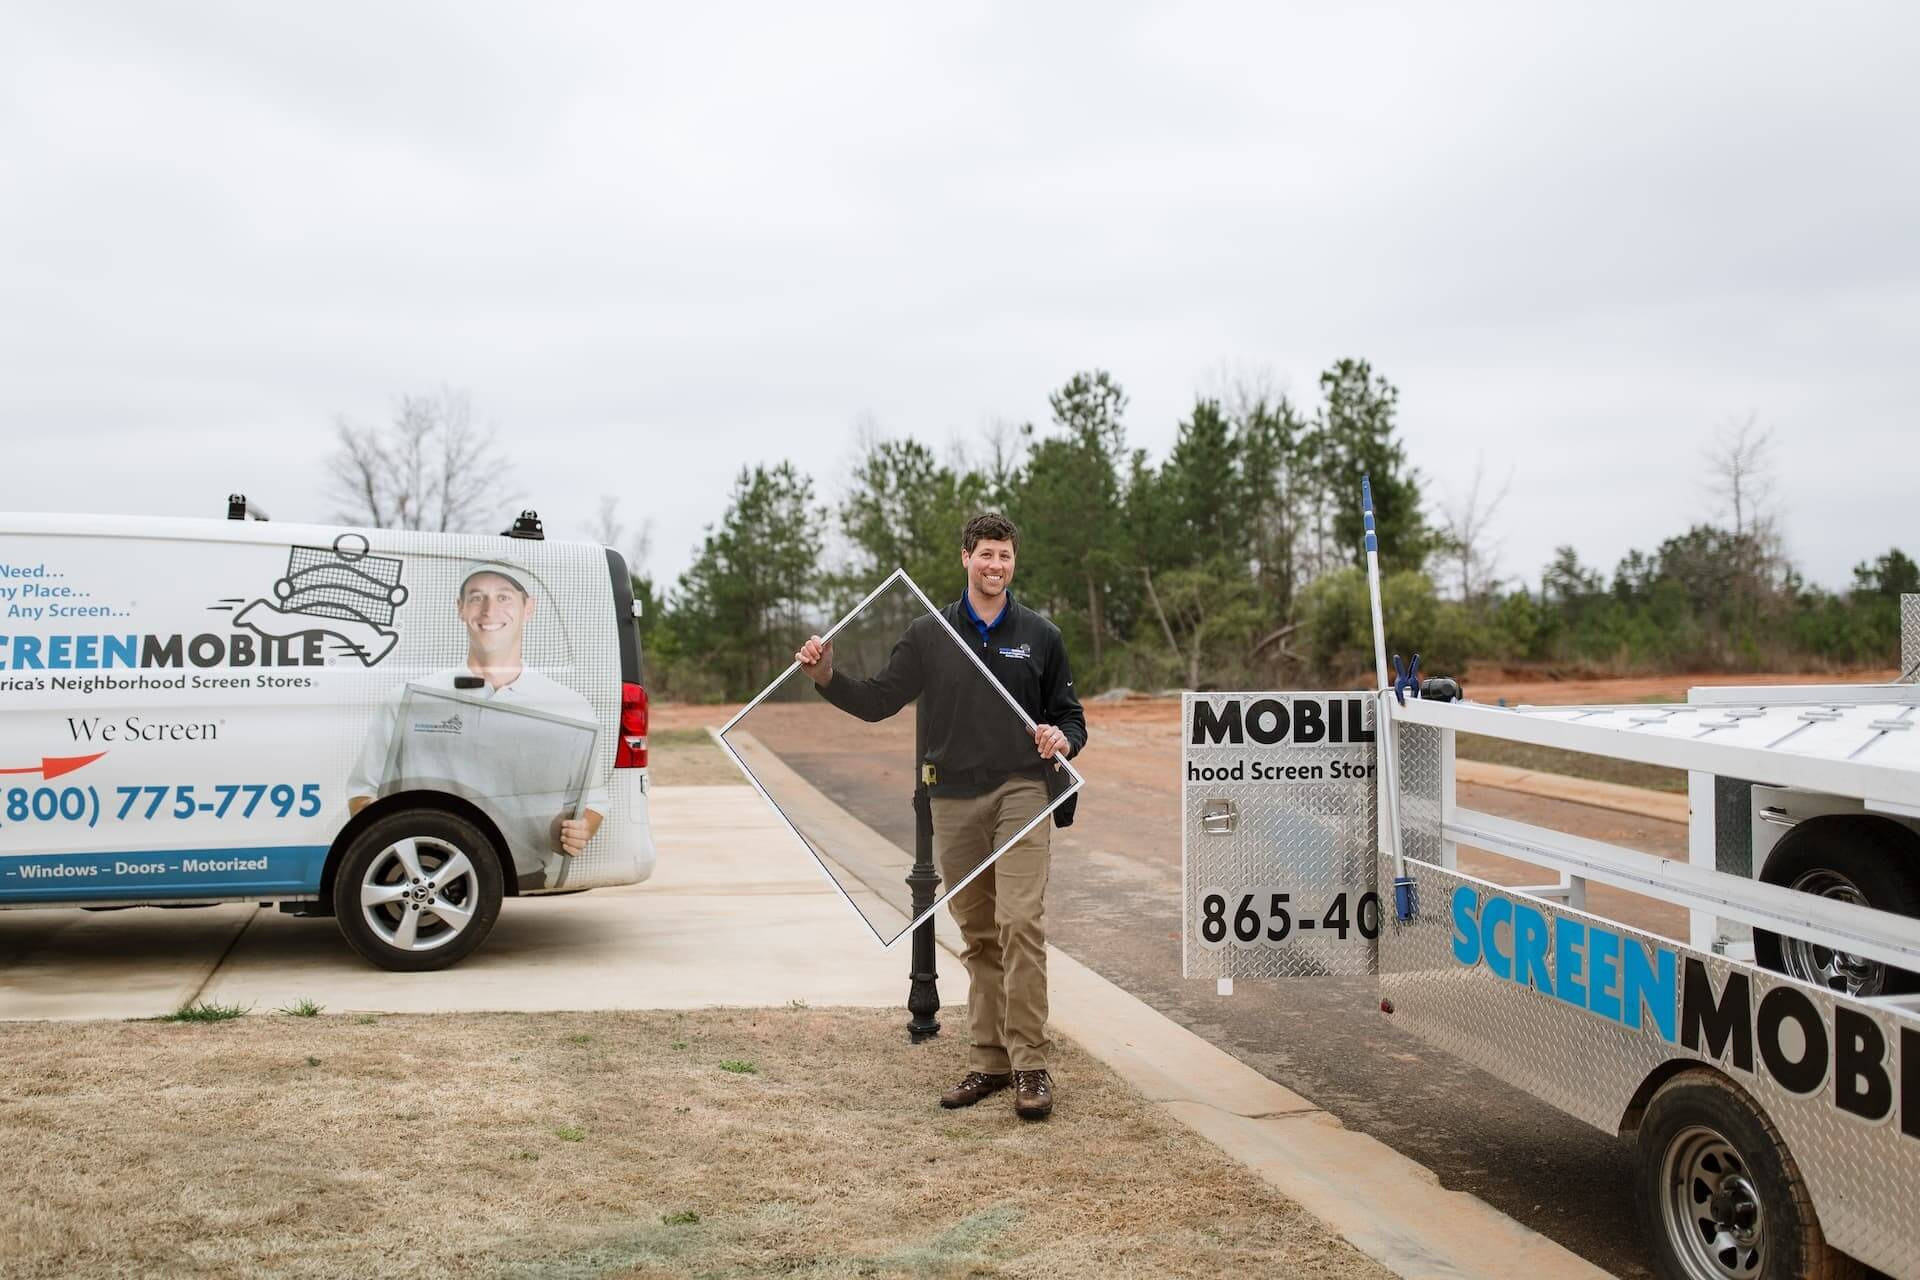 A Screenmobile pro carries a screen to a client's home. A Screenmobile van and trailer are parked at the home.